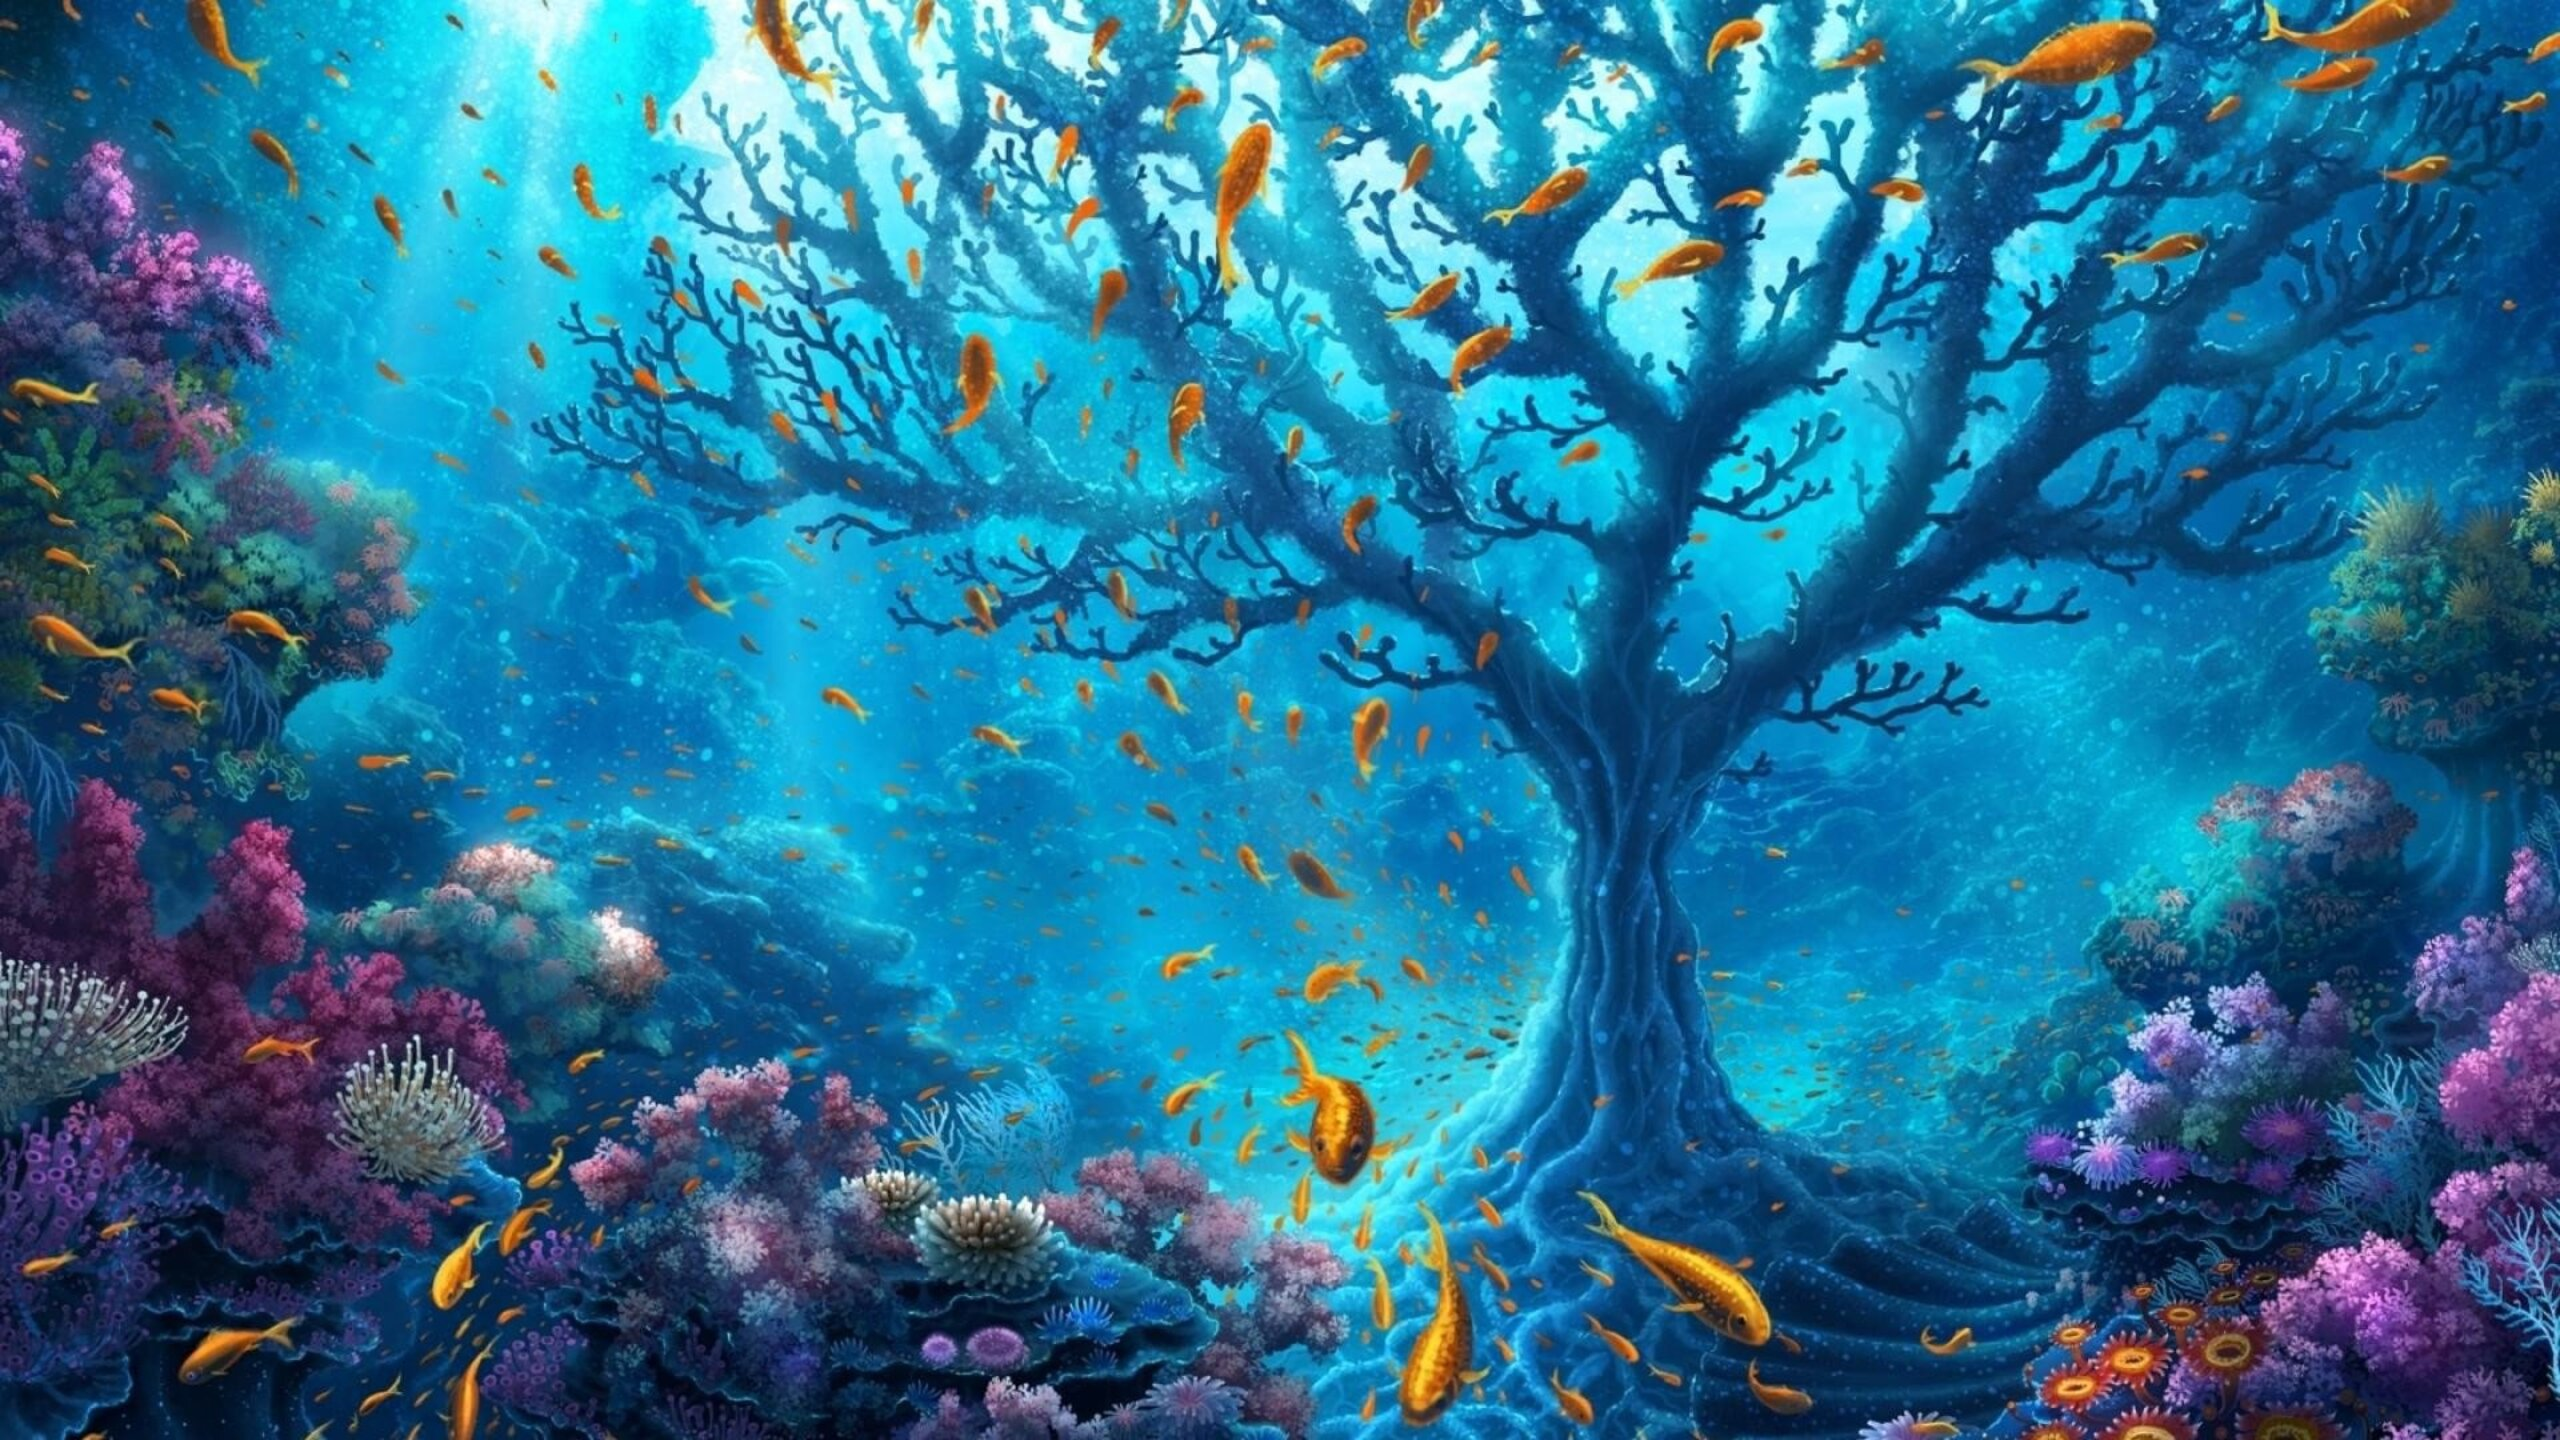 2560x1440 underwater world 1440p resolution hd 4k wallpapers, images